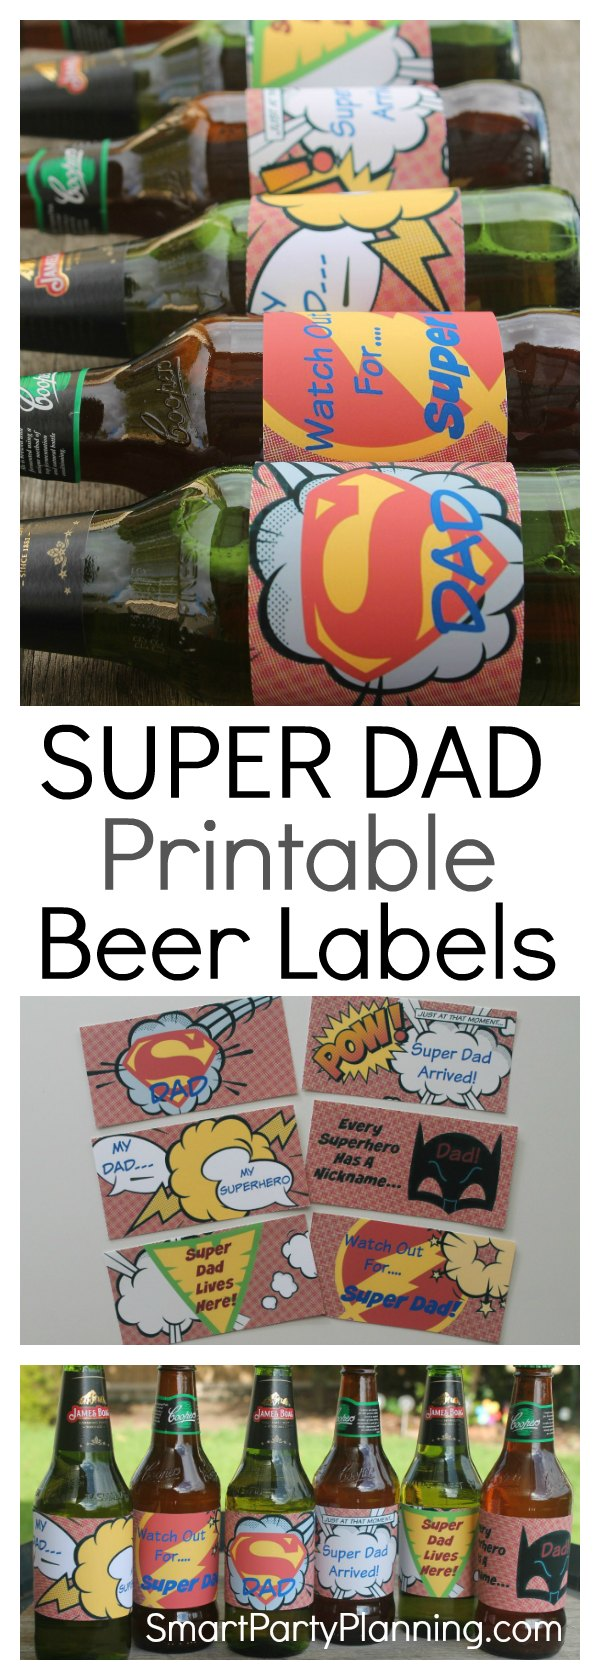 For dad's that love their beer, a pack of beer covered with superhero printables is going to be an awesome gift.  Whether you are looking for Father's day or birthday gift ideas, this one will be a favourite. Whether it's a gift from the kids, or you want to give it to your own dad, he is not going to be disappointed.  Make sure you grab the freebie too!